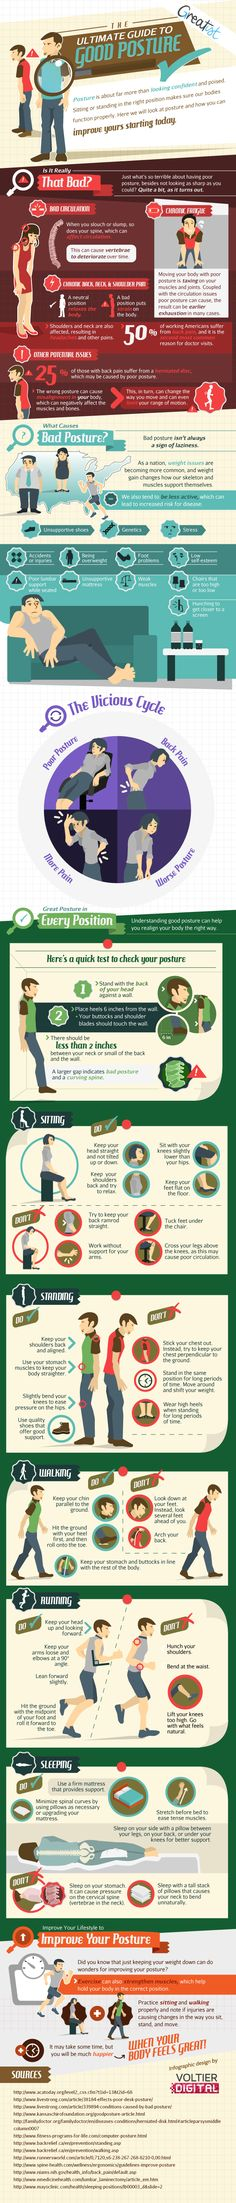 Guide to good posture